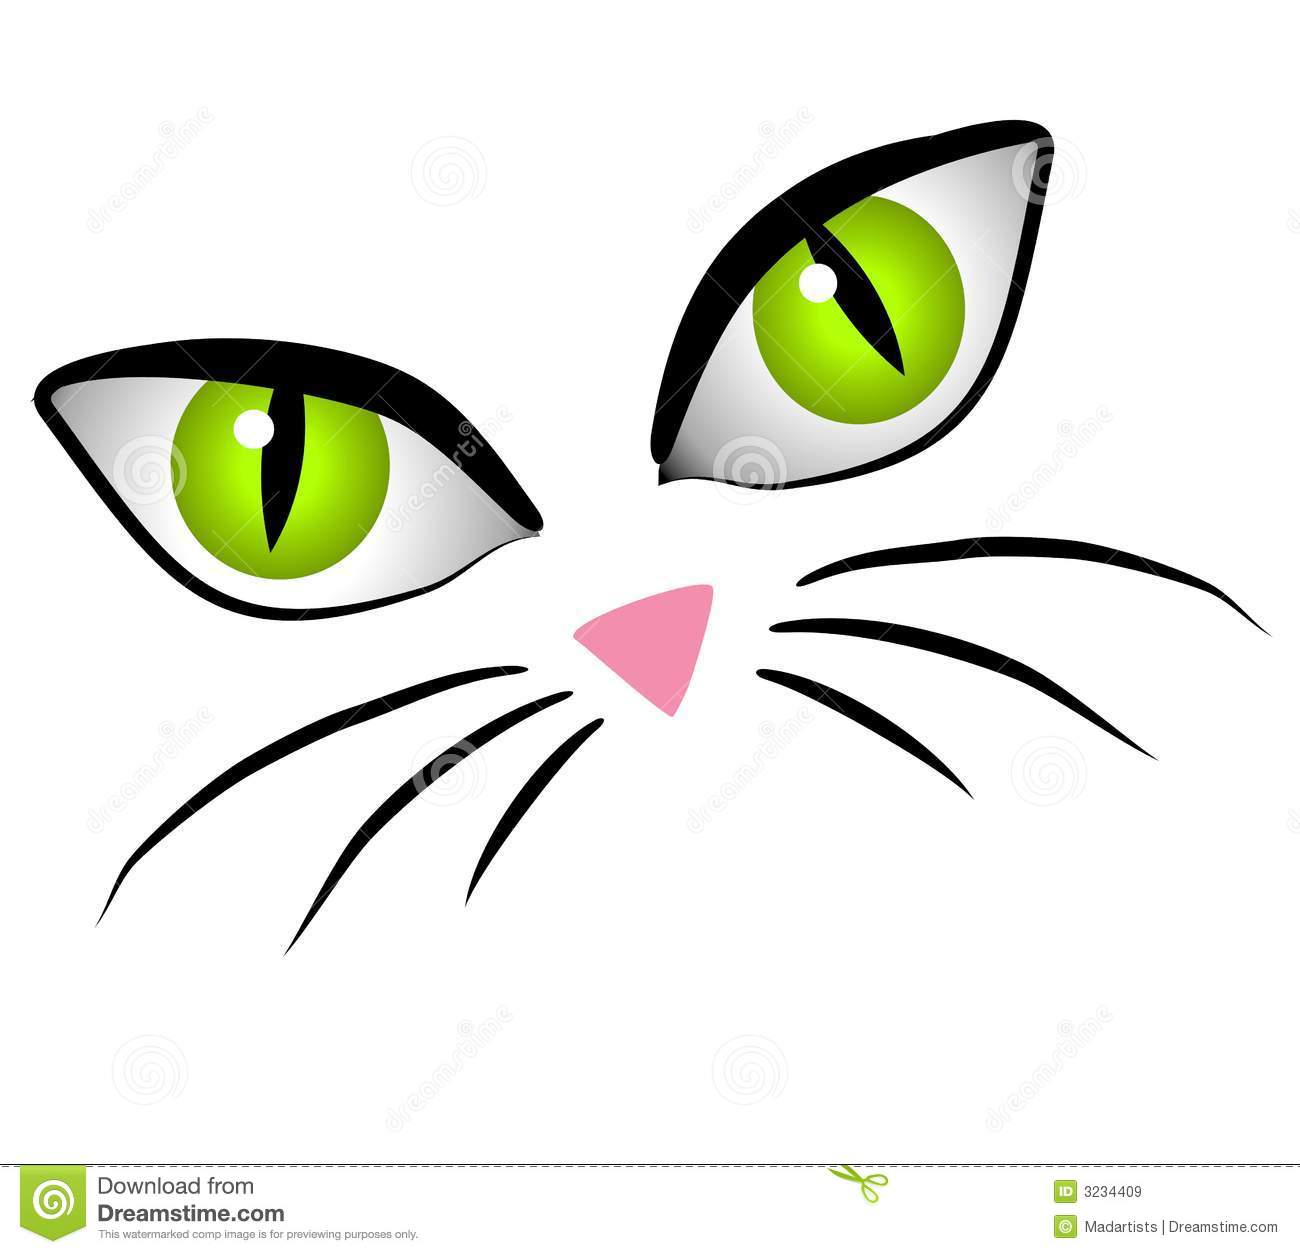 cartoon cat face eyes clip art stock illustration illustration of rh dreamstime com cat face clipart black and white cat face clipart images